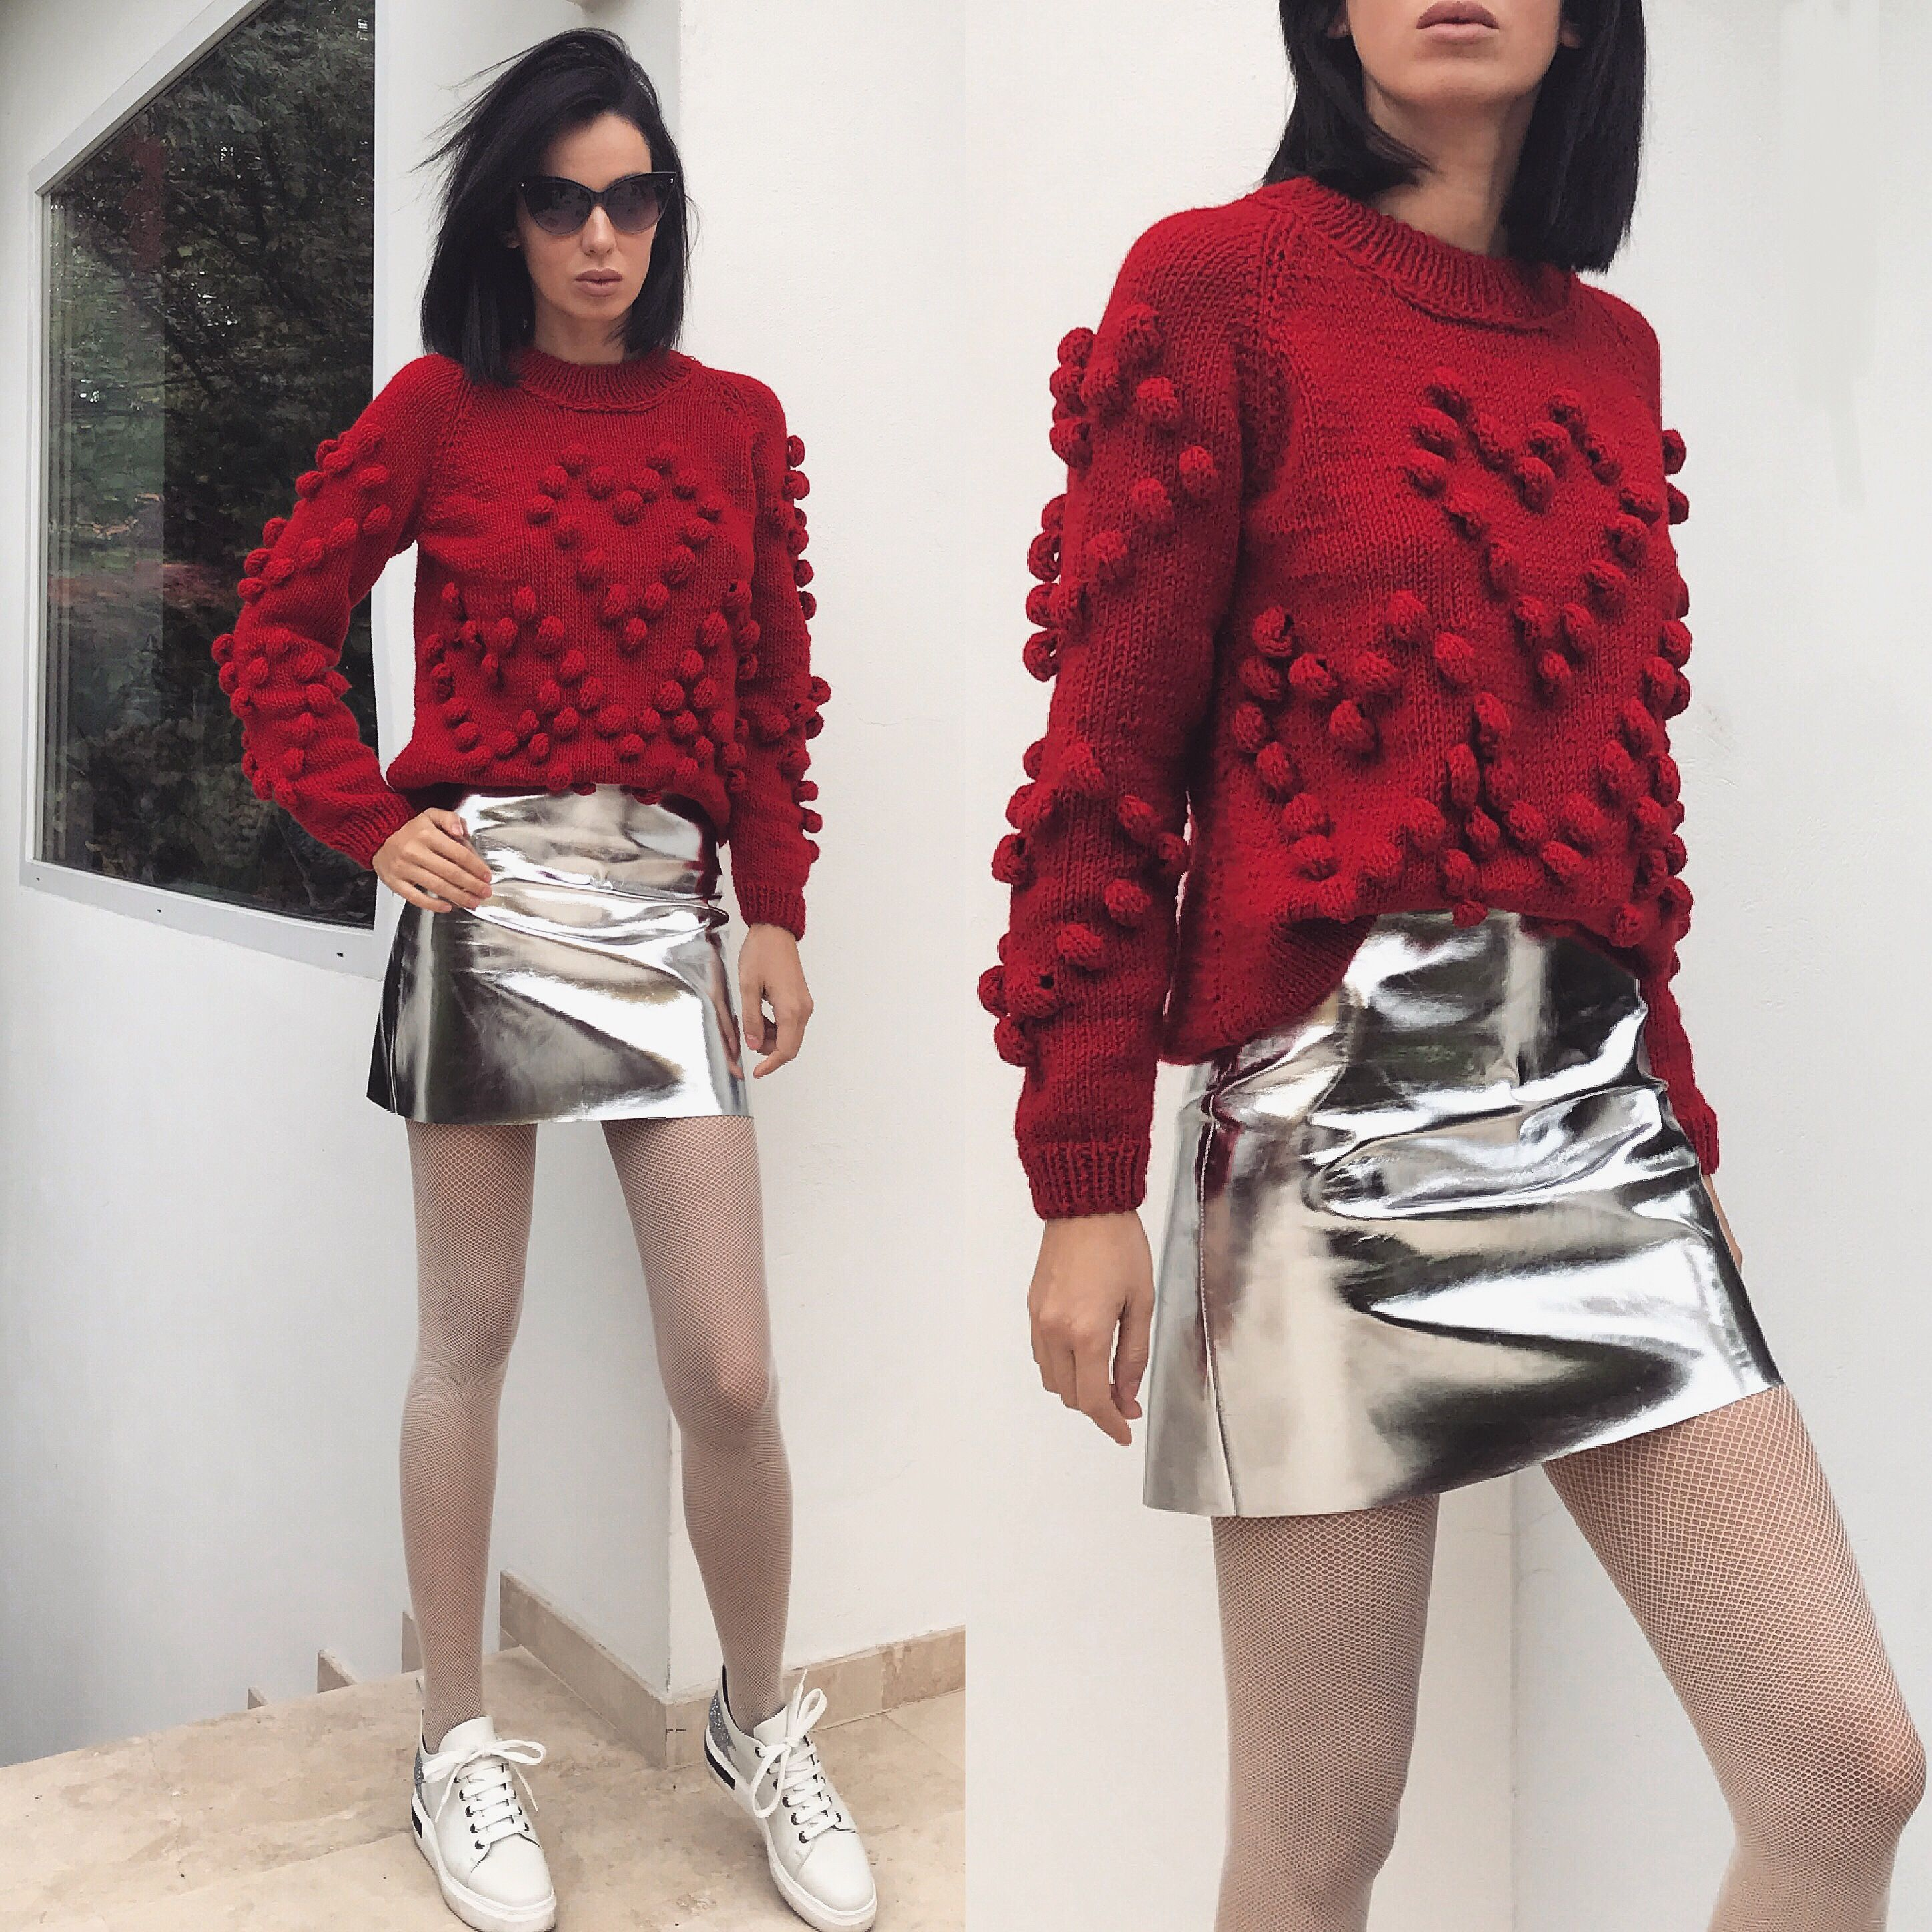 Cherry red sweater by Laura Ion / handmade knit | By Laura Ion ...